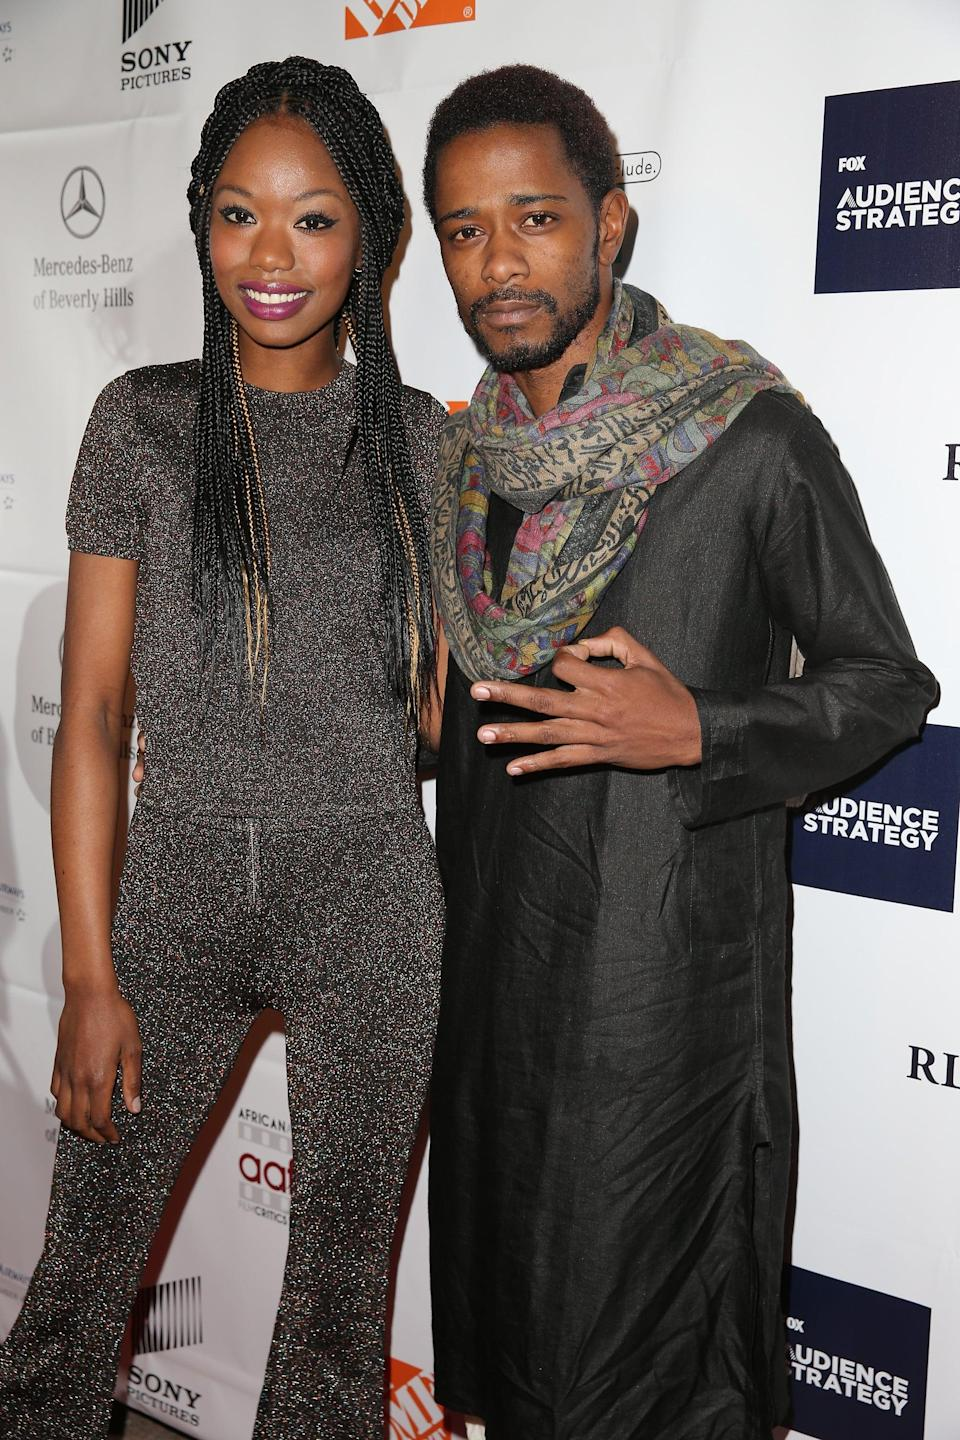 """<p>On her now-deactivated Instagram page, Roquemore, <a href=""""http://www.eonline.com/news/862565/xosha-roquemore-gives-birth-to-first-child-with-lakeith-stanfield"""" class=""""link rapid-noclick-resp"""" rel=""""nofollow noopener"""" target=""""_blank"""" data-ylk=""""slk:according to E!"""">according to E!</a>, shared and deleted a picture of their daughter, captioned """"Mom."""" E! also reported that she <a href=""""http://www.eonline.com/news/834837/the-mindy-project-s-xosha-roquemore-is-expecting-first-child-with-lakeith-stanfield"""" class=""""link rapid-noclick-resp"""" rel=""""nofollow noopener"""" target=""""_blank"""" data-ylk=""""slk:had been expecting in March"""">had been expecting in March</a> of that year.</p>"""